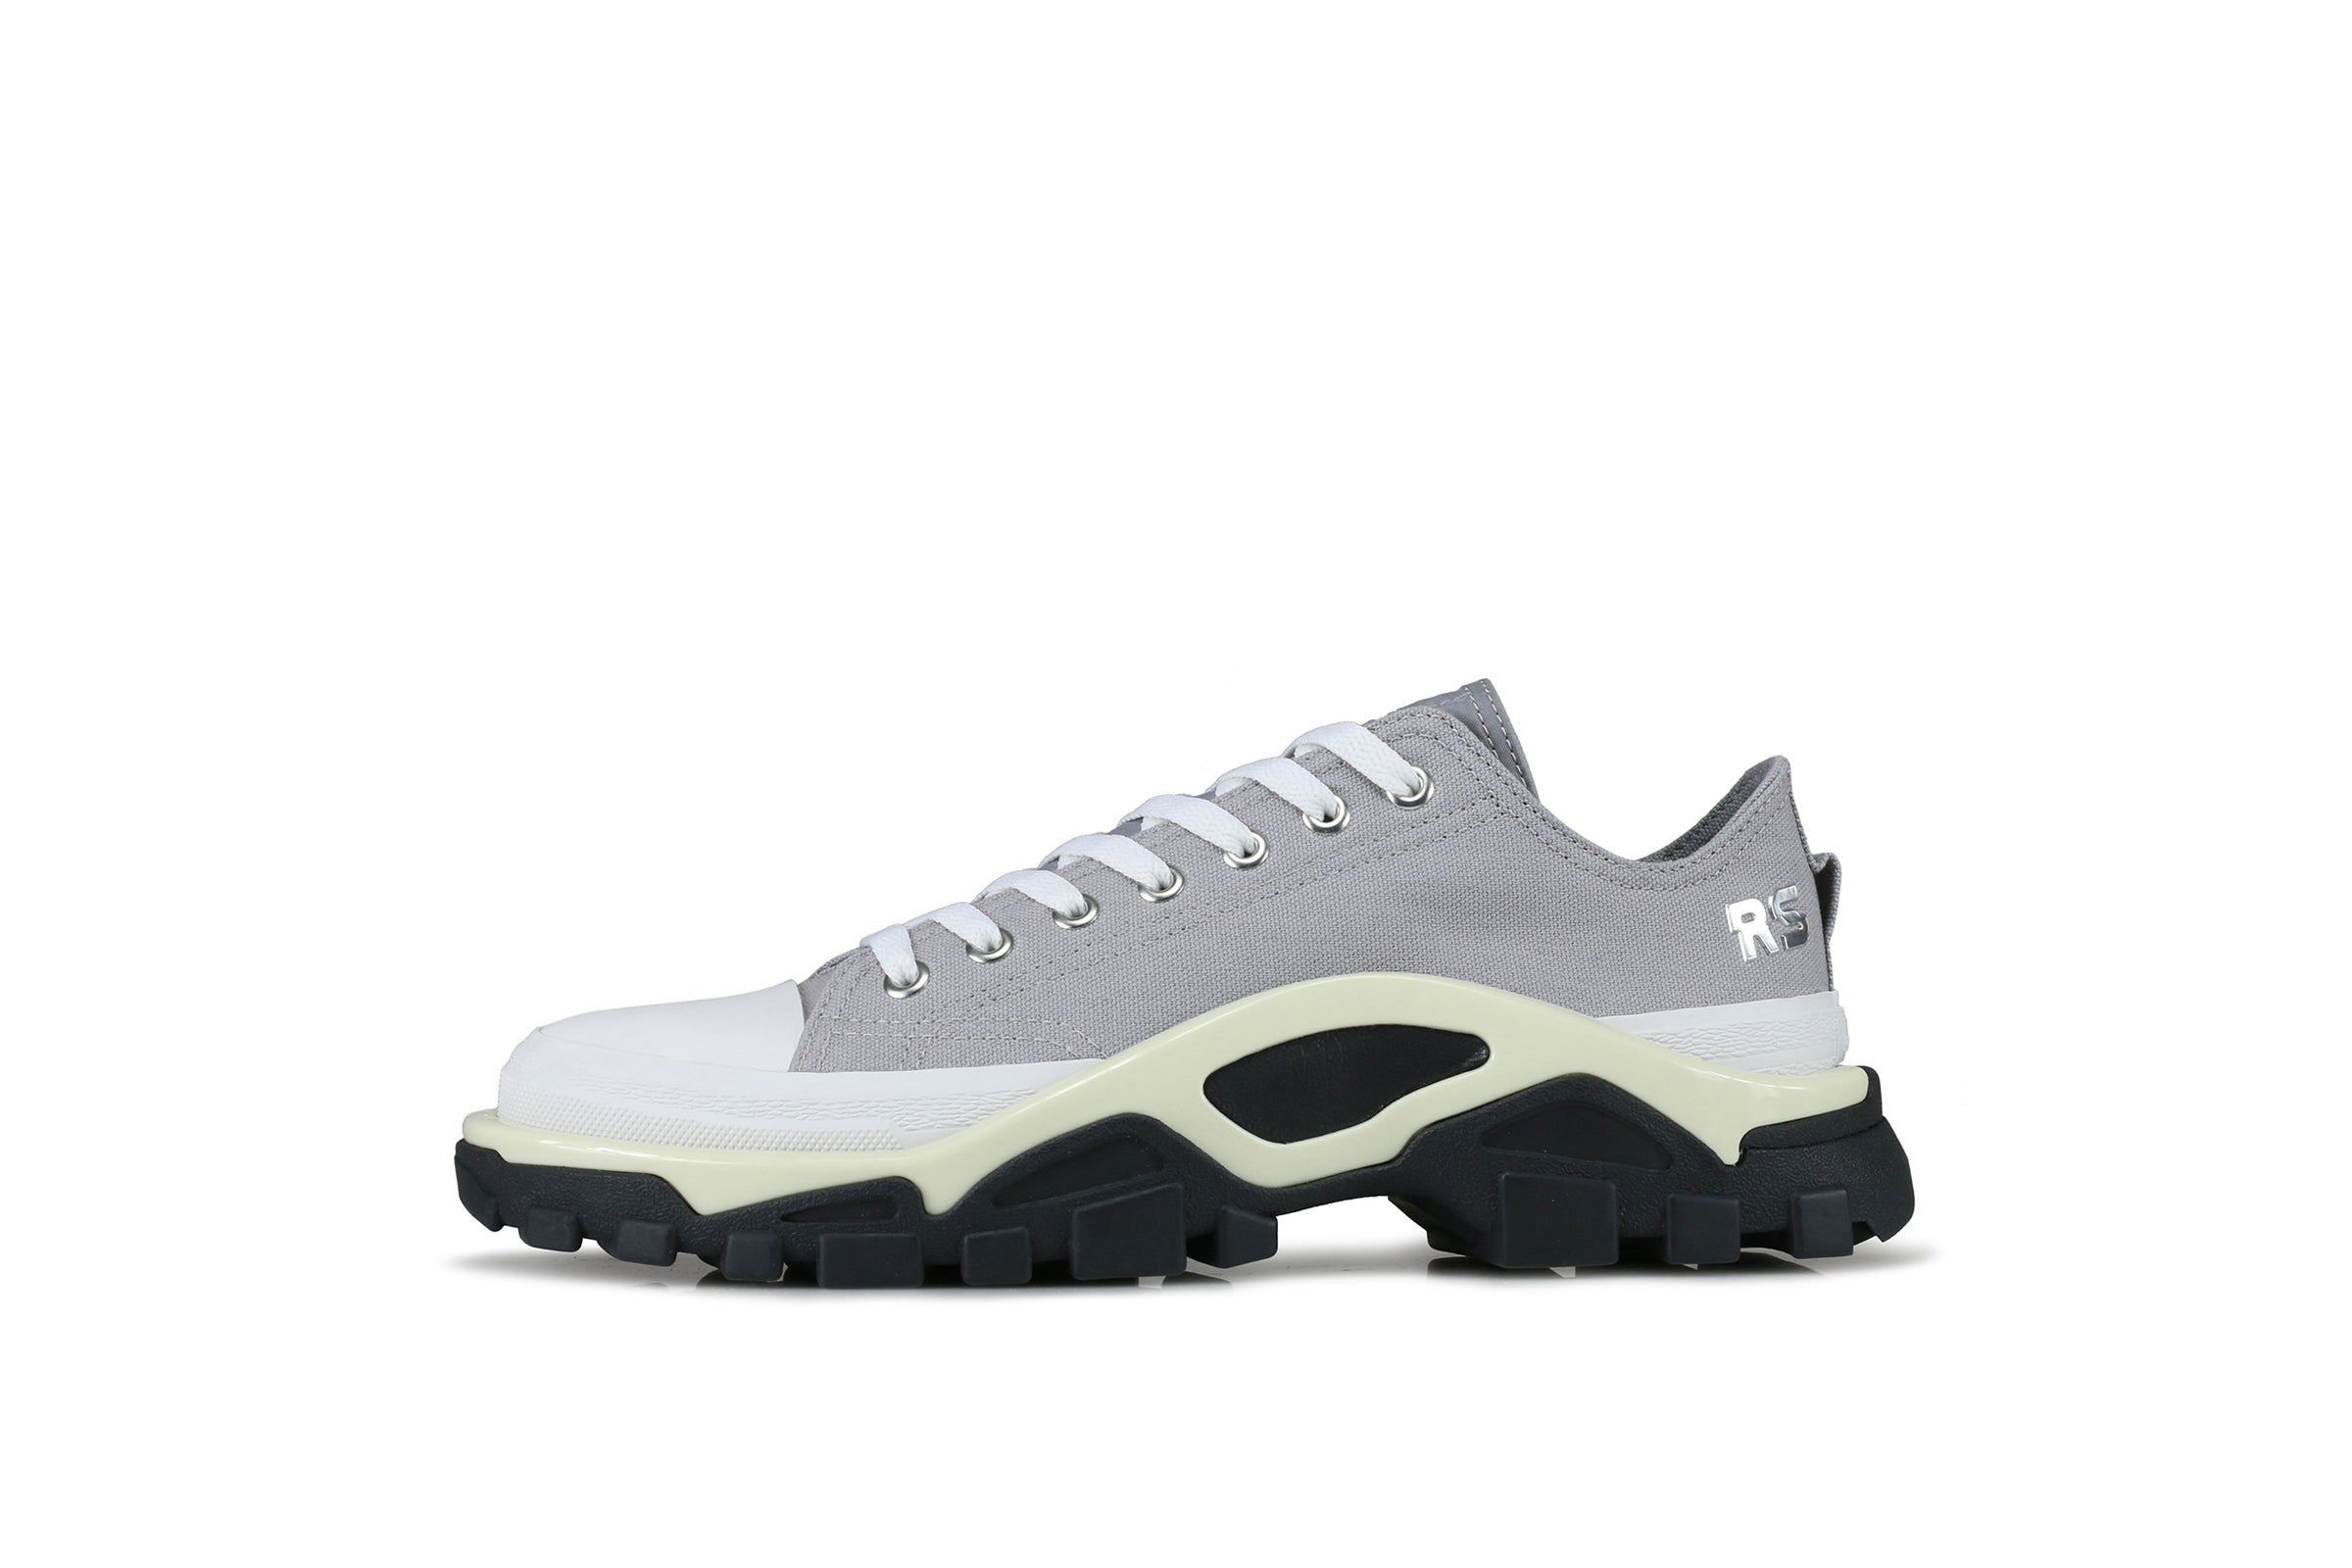 low priced a5240 4a249 Adidas Detroit Runner x Raf Simons